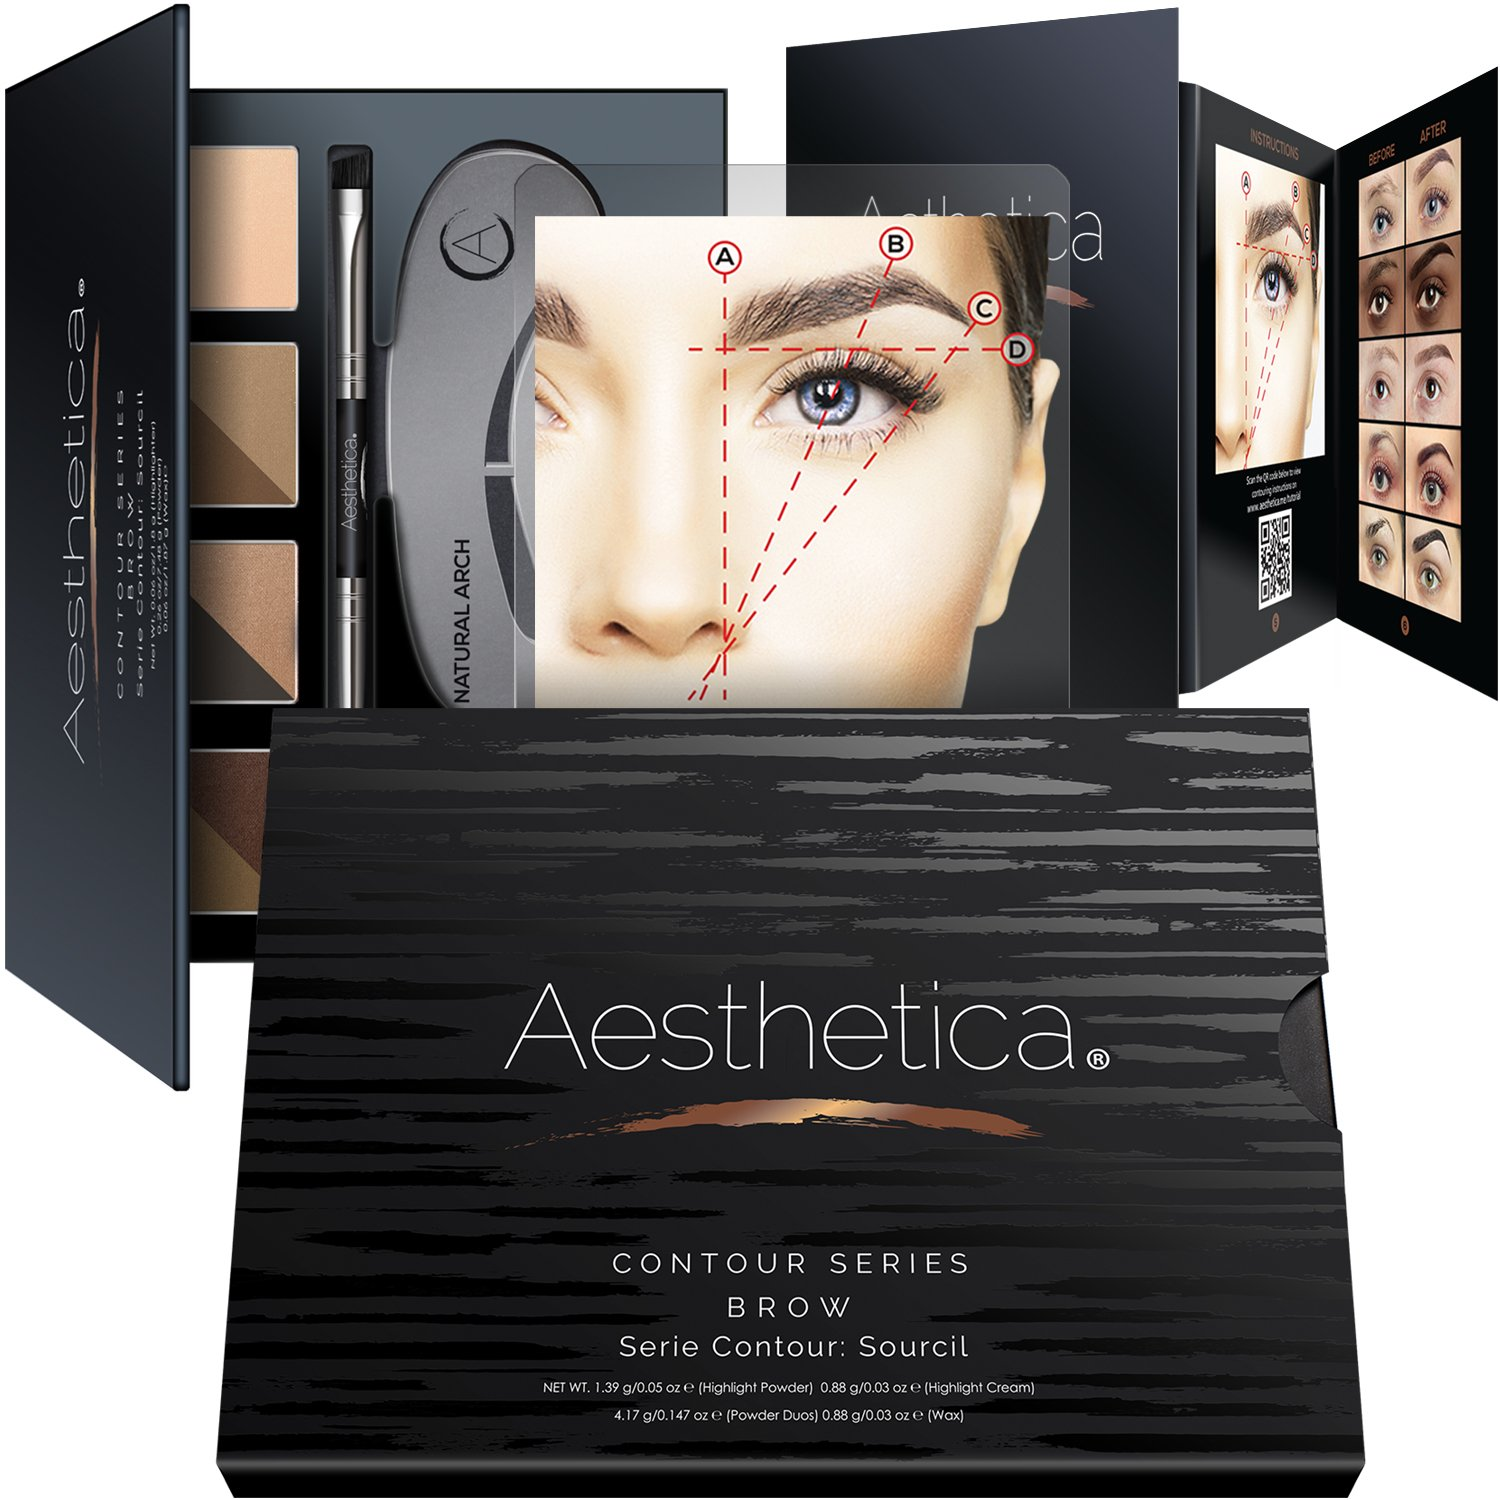 Aesthetica Cosmetics Brow Contour Kit – 16-Piece Contouring Eyebrow Makeup Palette – Includes Powders, Wax, Stencils, Spoolie/Brush Duo, Tweezers & Step-by-Step Instructions – Cruelty Free